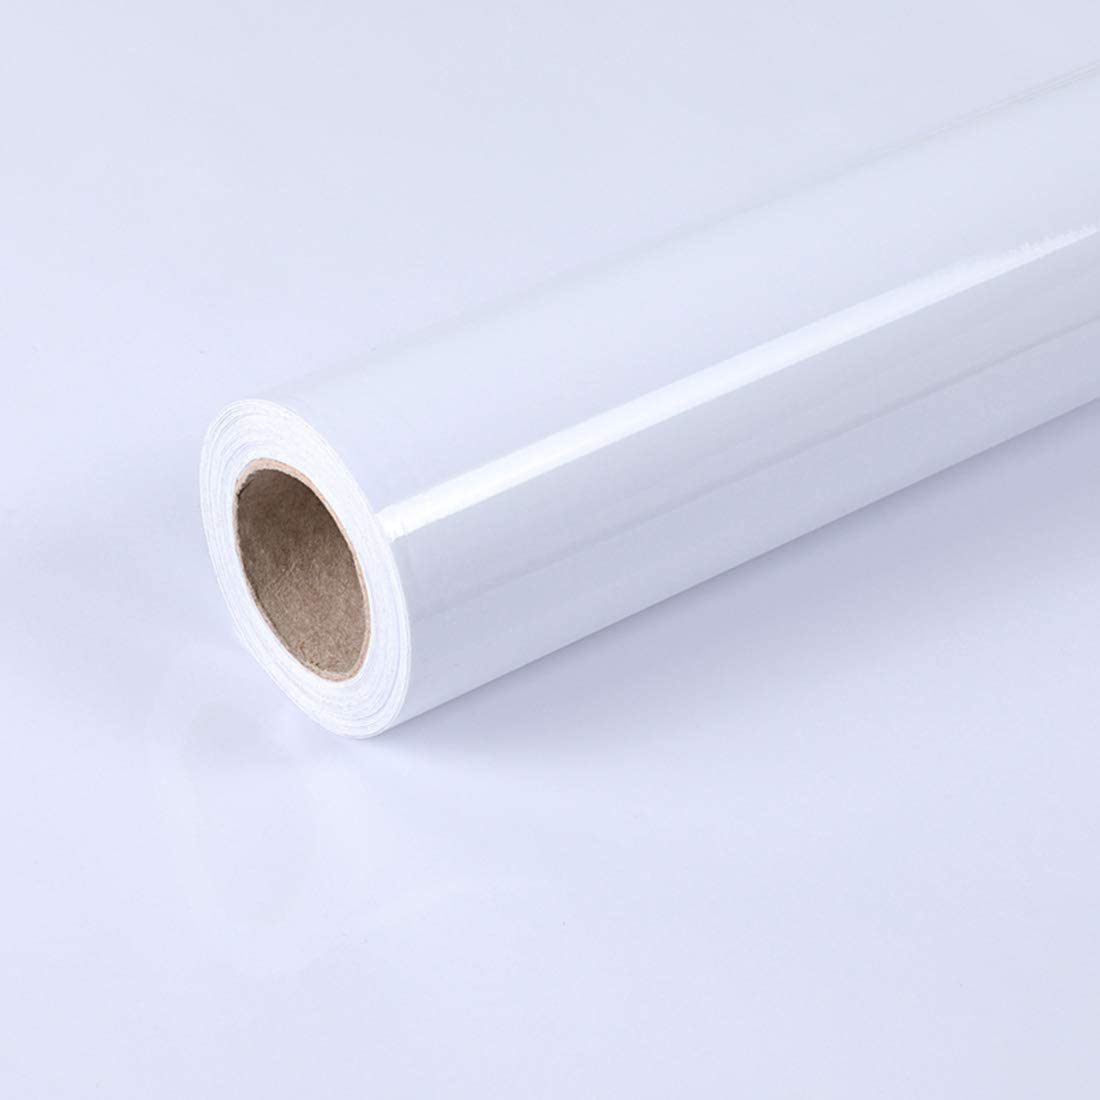 Tinkei 15.8'' x 197'' White Contact Paper Self-Adhesive Contact Paper Countertops Contact Paper Waterproof Cabinets Shelves Peel and Stick Kitchen Oil Proof Wallpaper